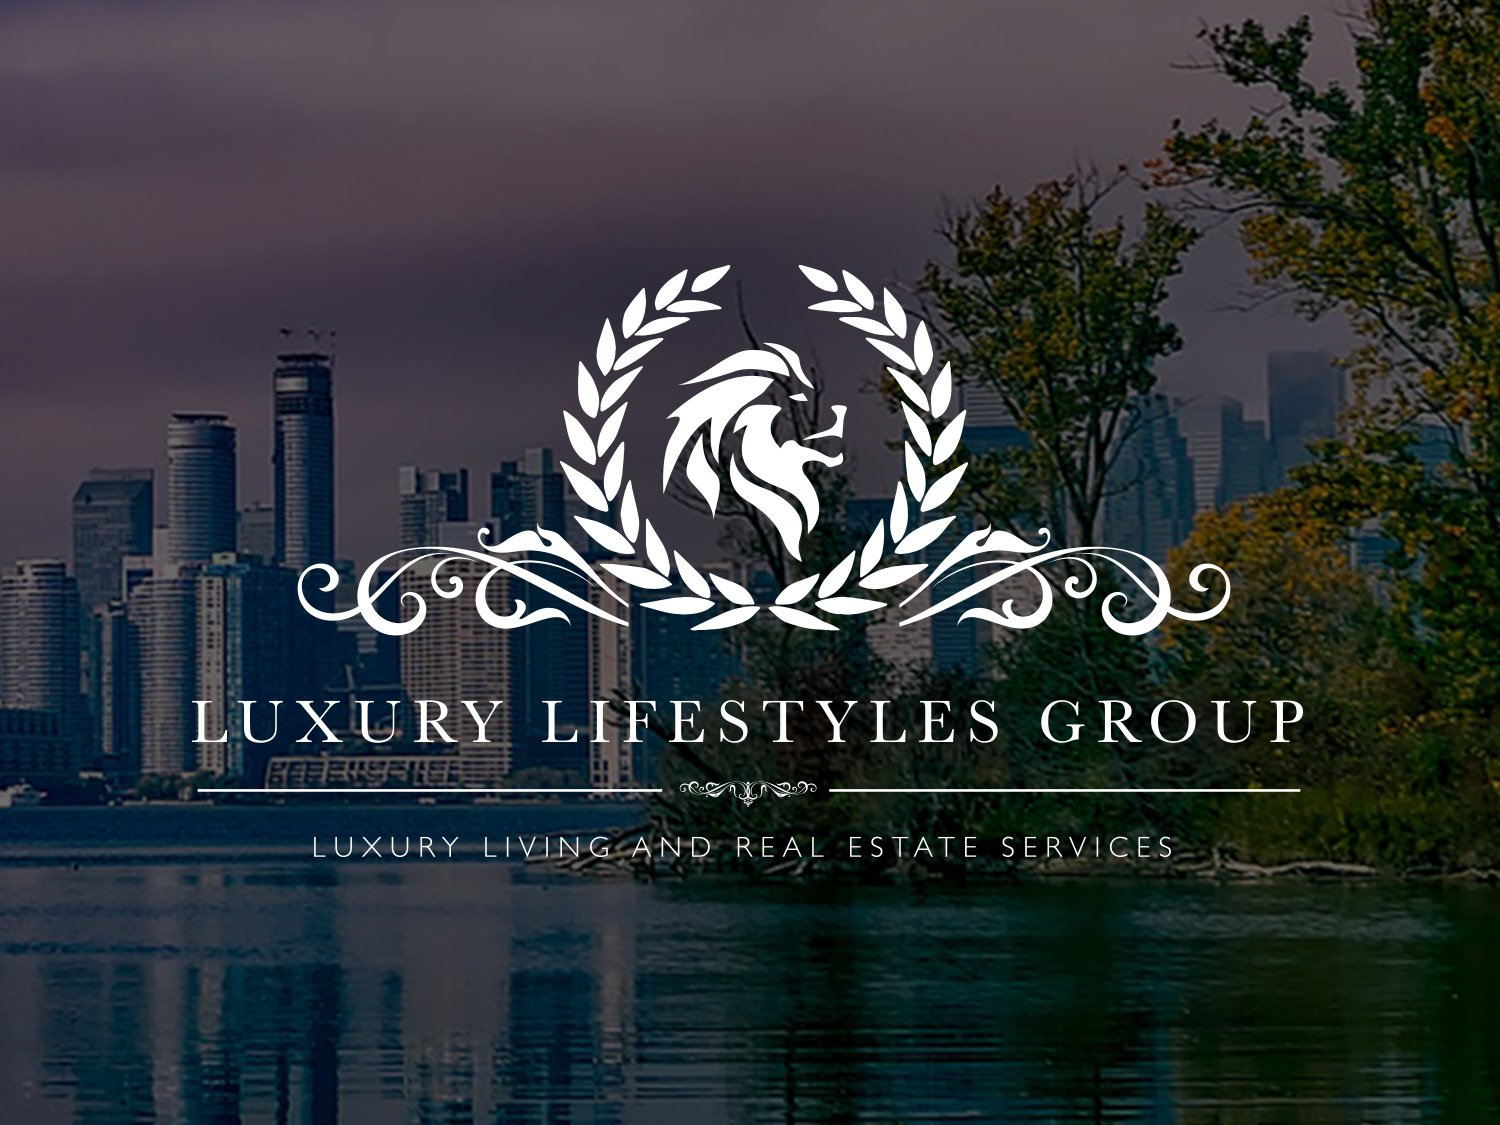 Luxury Lifestyles Group